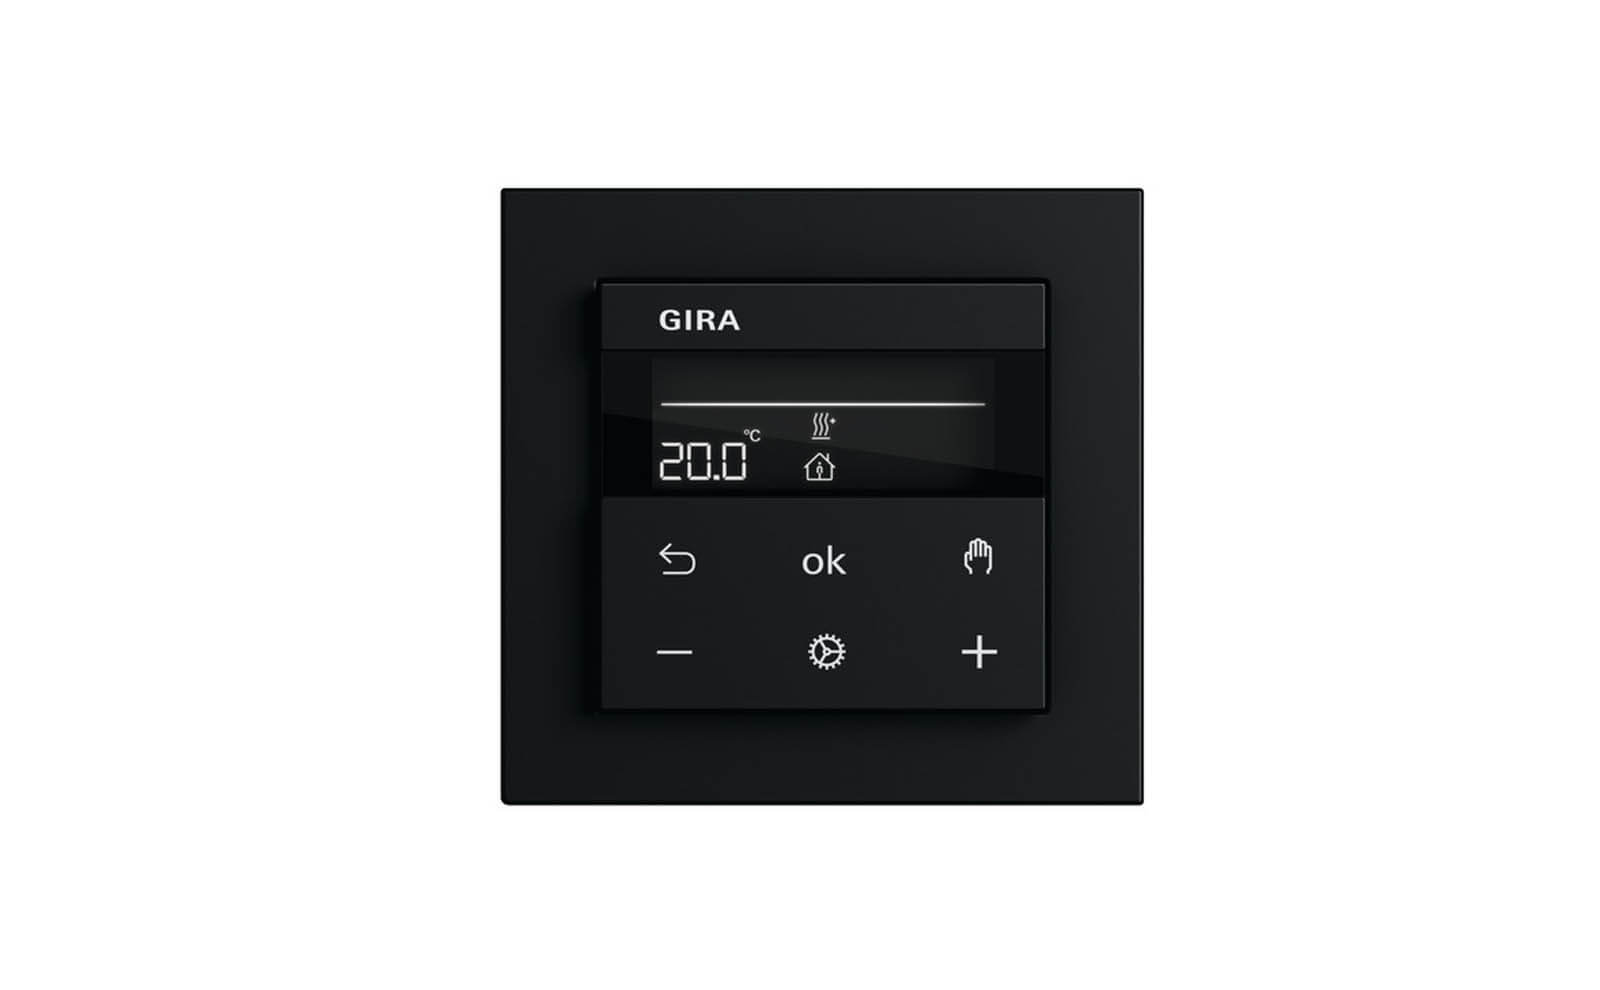 Gira System 3000 Raumtemperaturregler Display